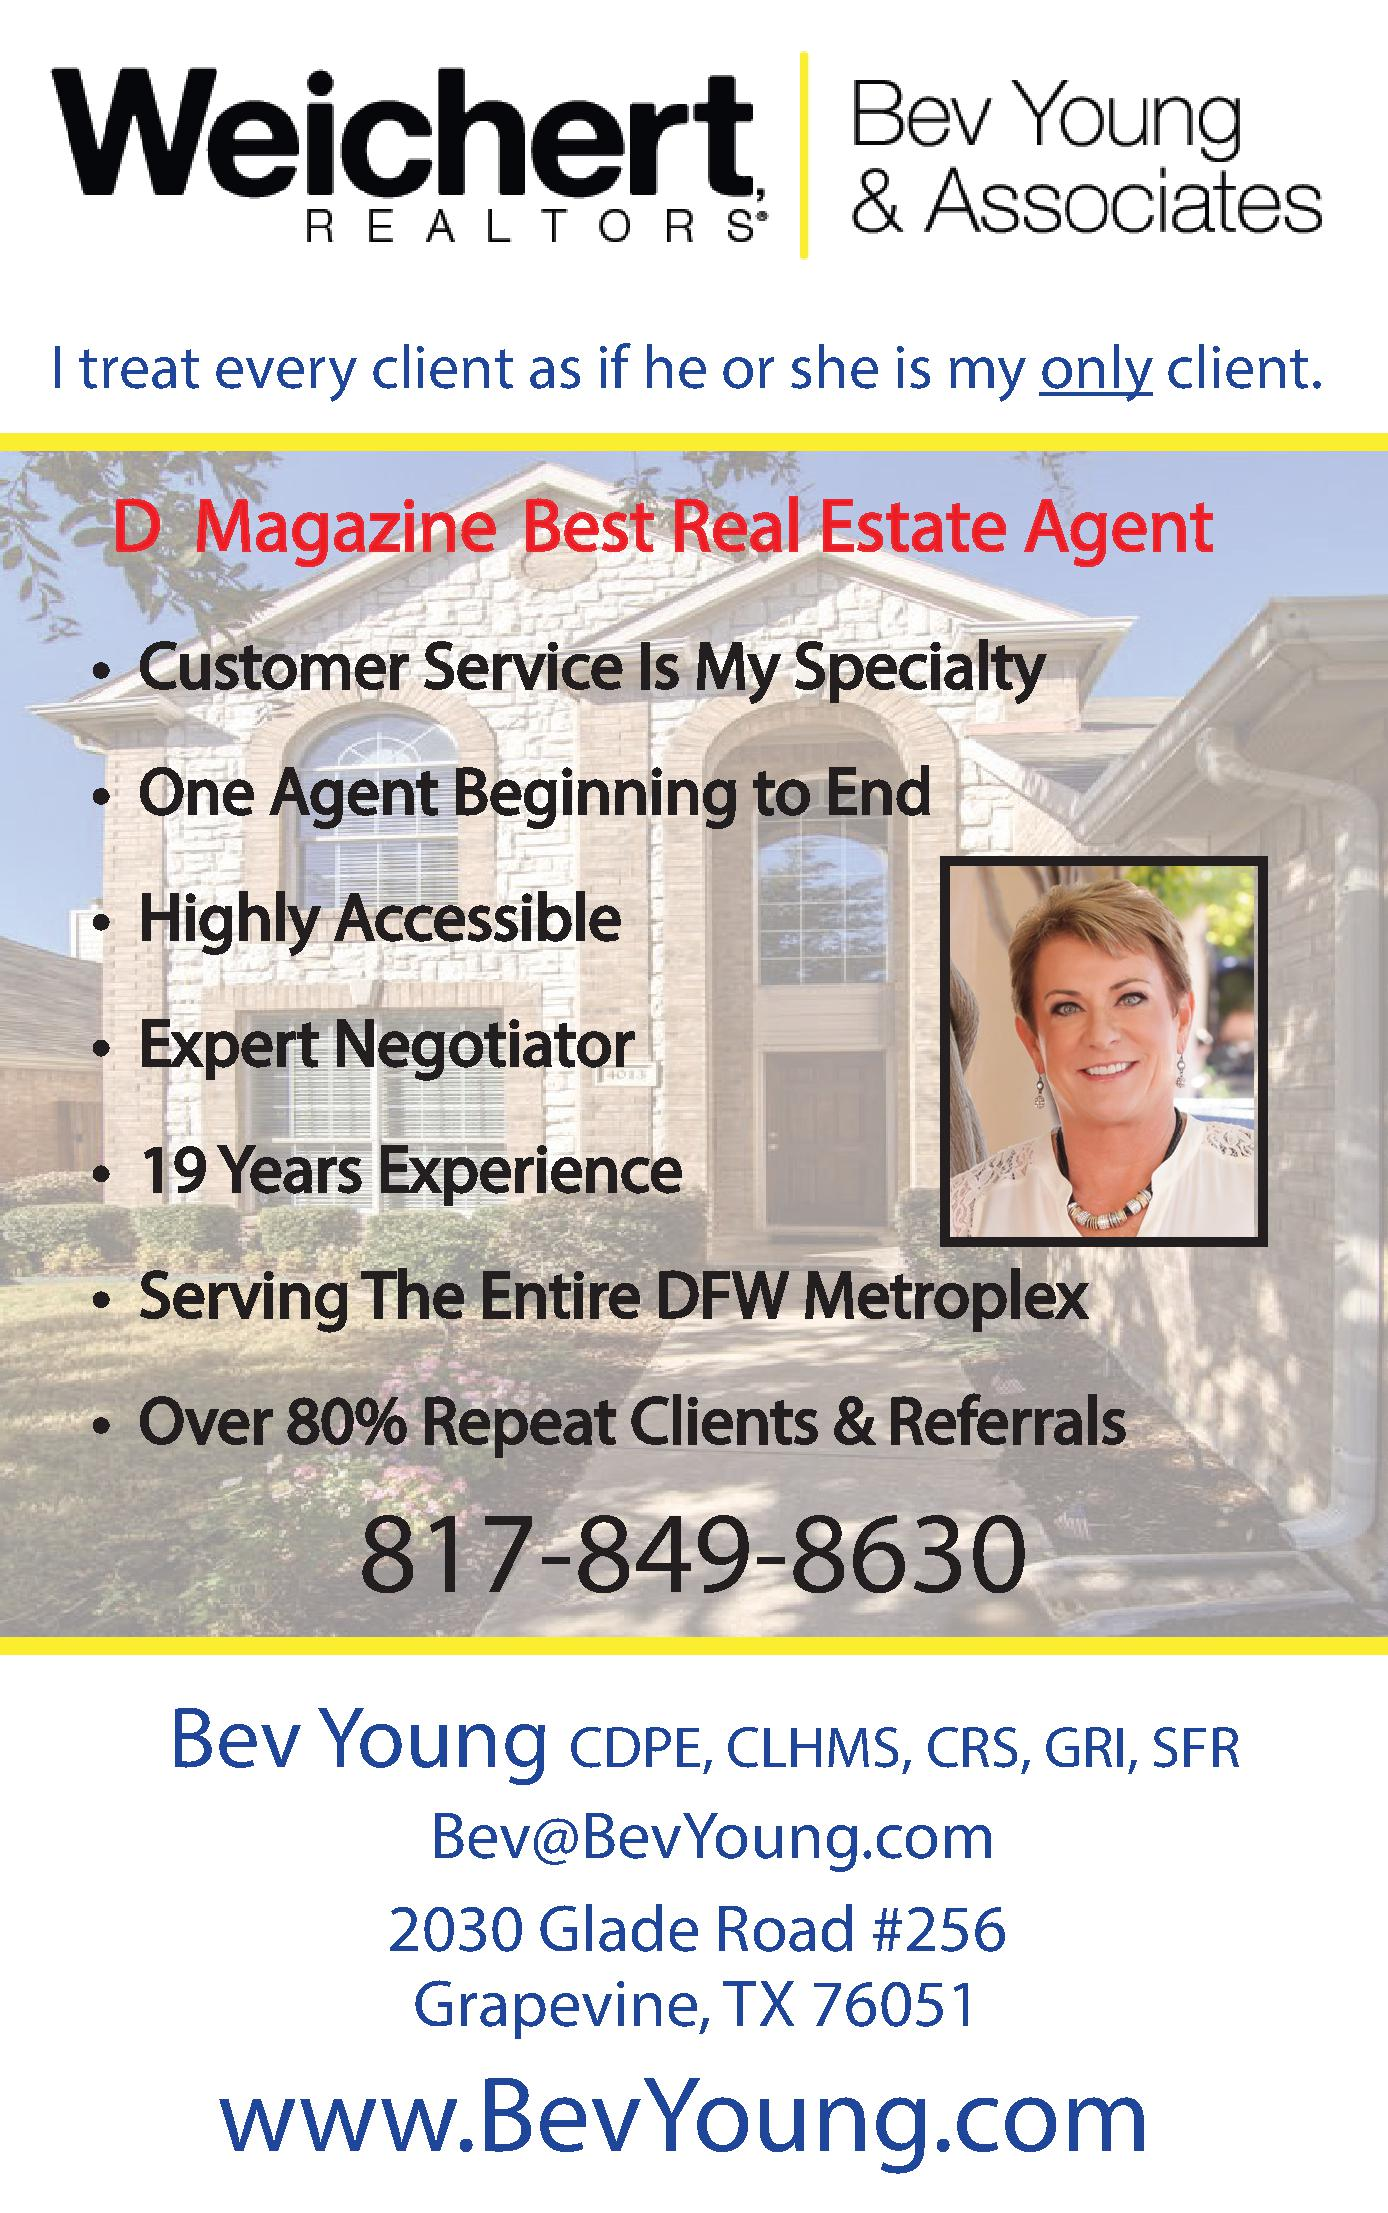 Weichert, Realtors – Bev Young & Associates